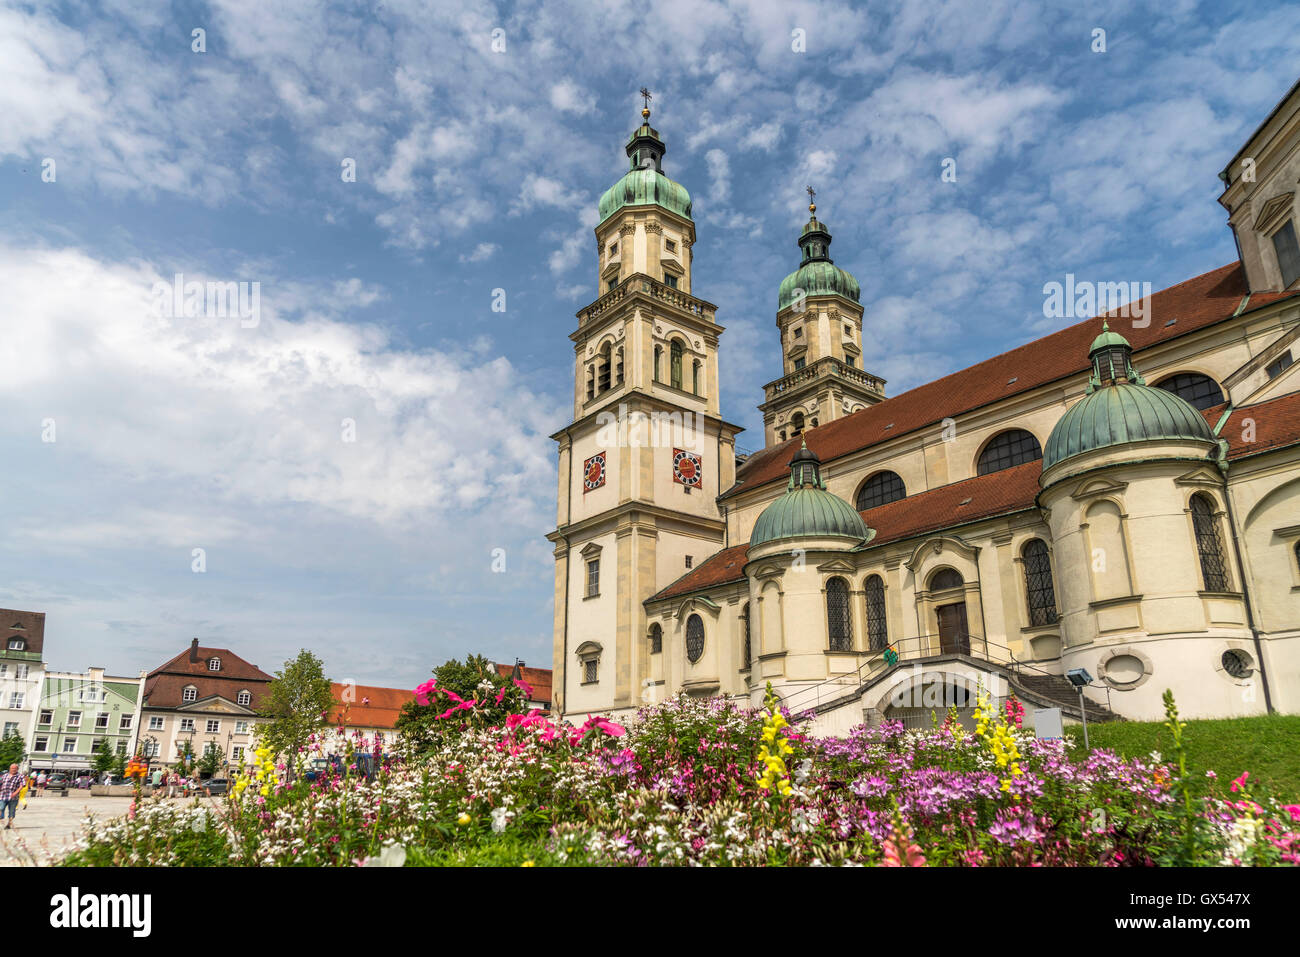 st lorenz kirche stock photos st lorenz kirche stock images alamy. Black Bedroom Furniture Sets. Home Design Ideas